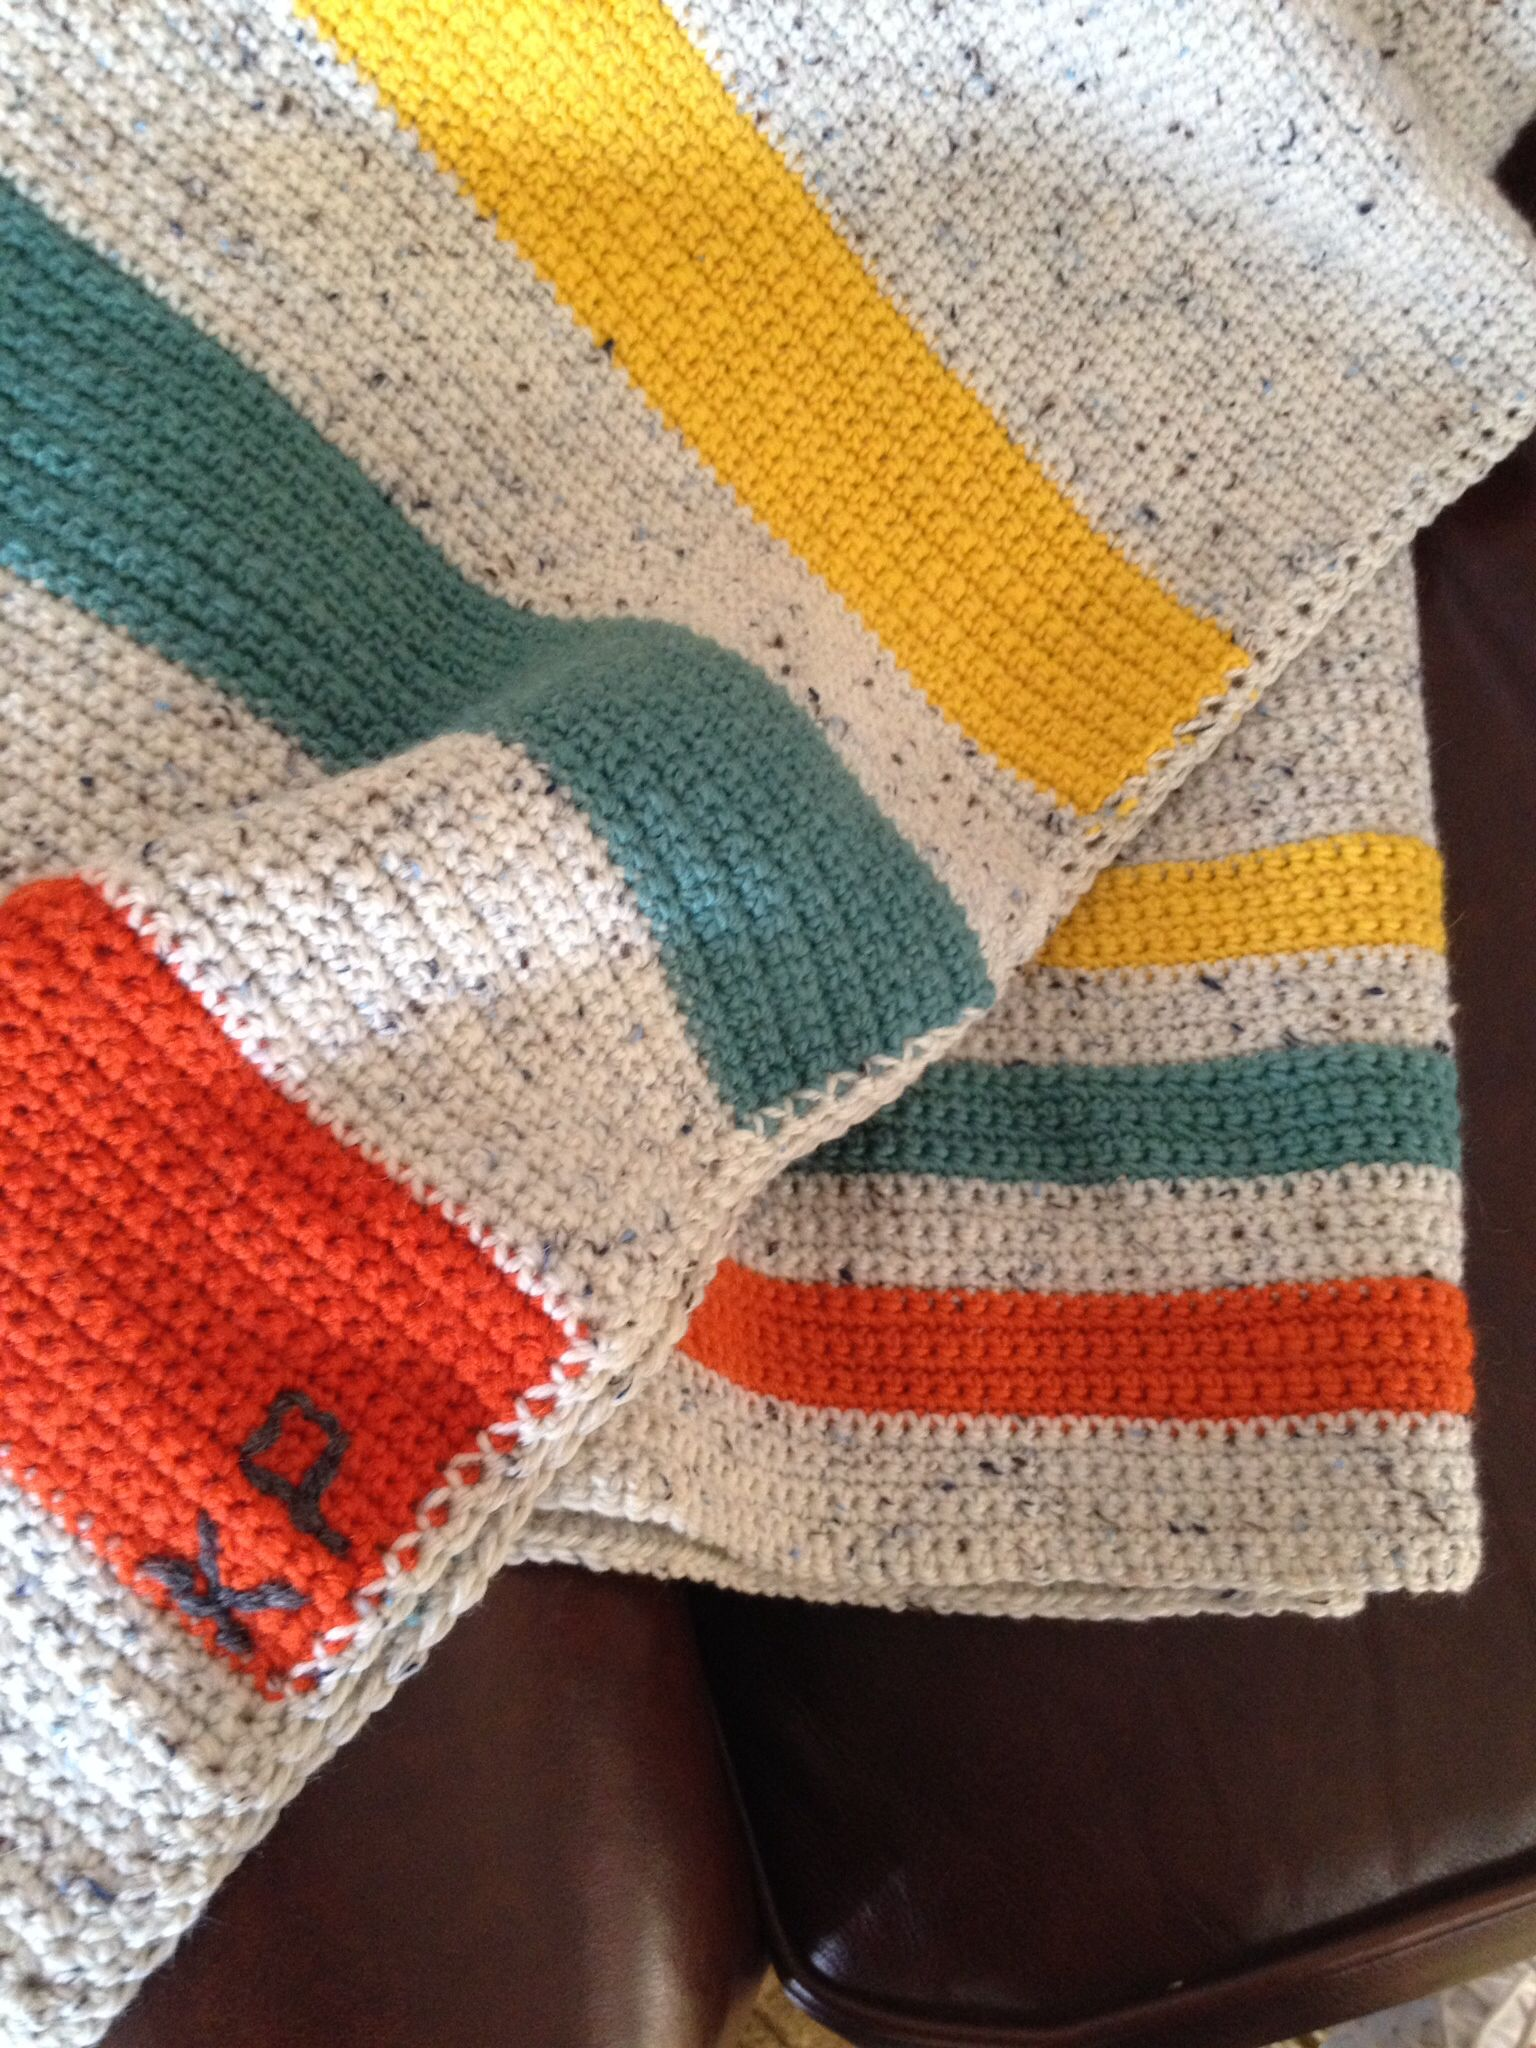 dating hudson bay blankets There are a number of clues to dating the manufacture of various point blankets dated some two-dozen styles of labels used by the hudson's bay company since.